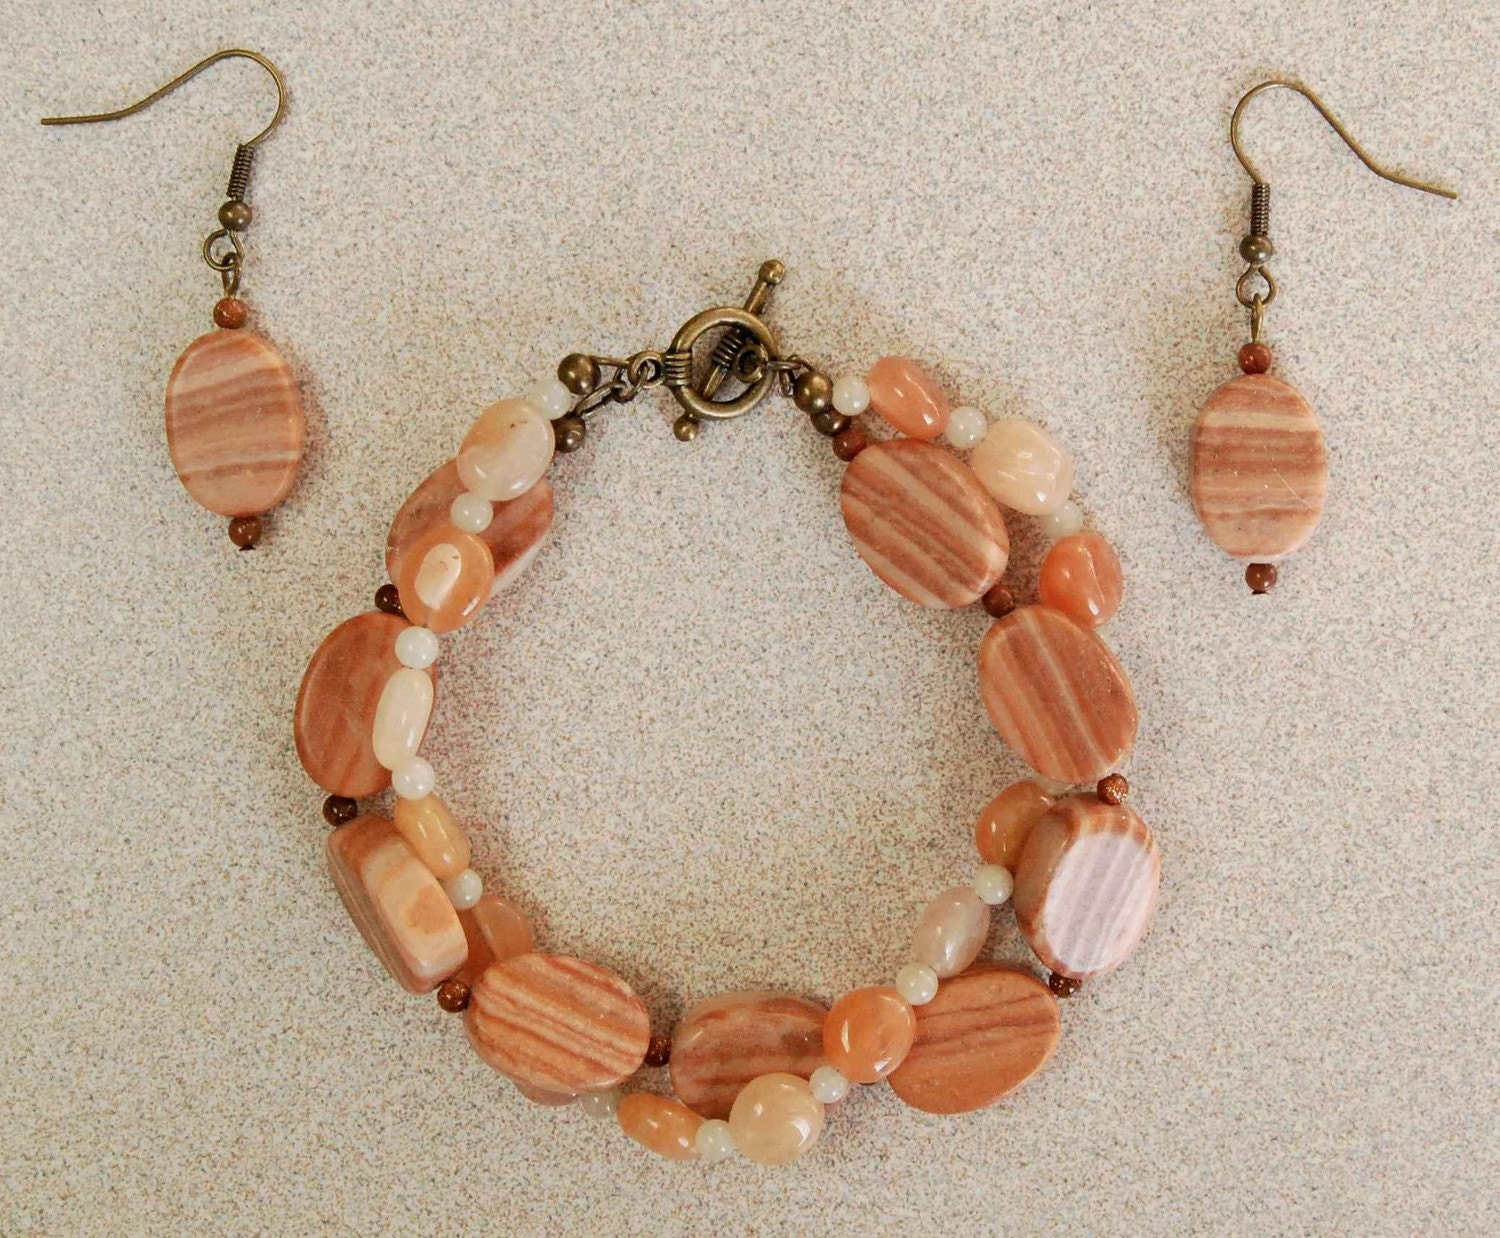 Twisted Gemstone Bracelet n Earrings - Terra Cotta Shades